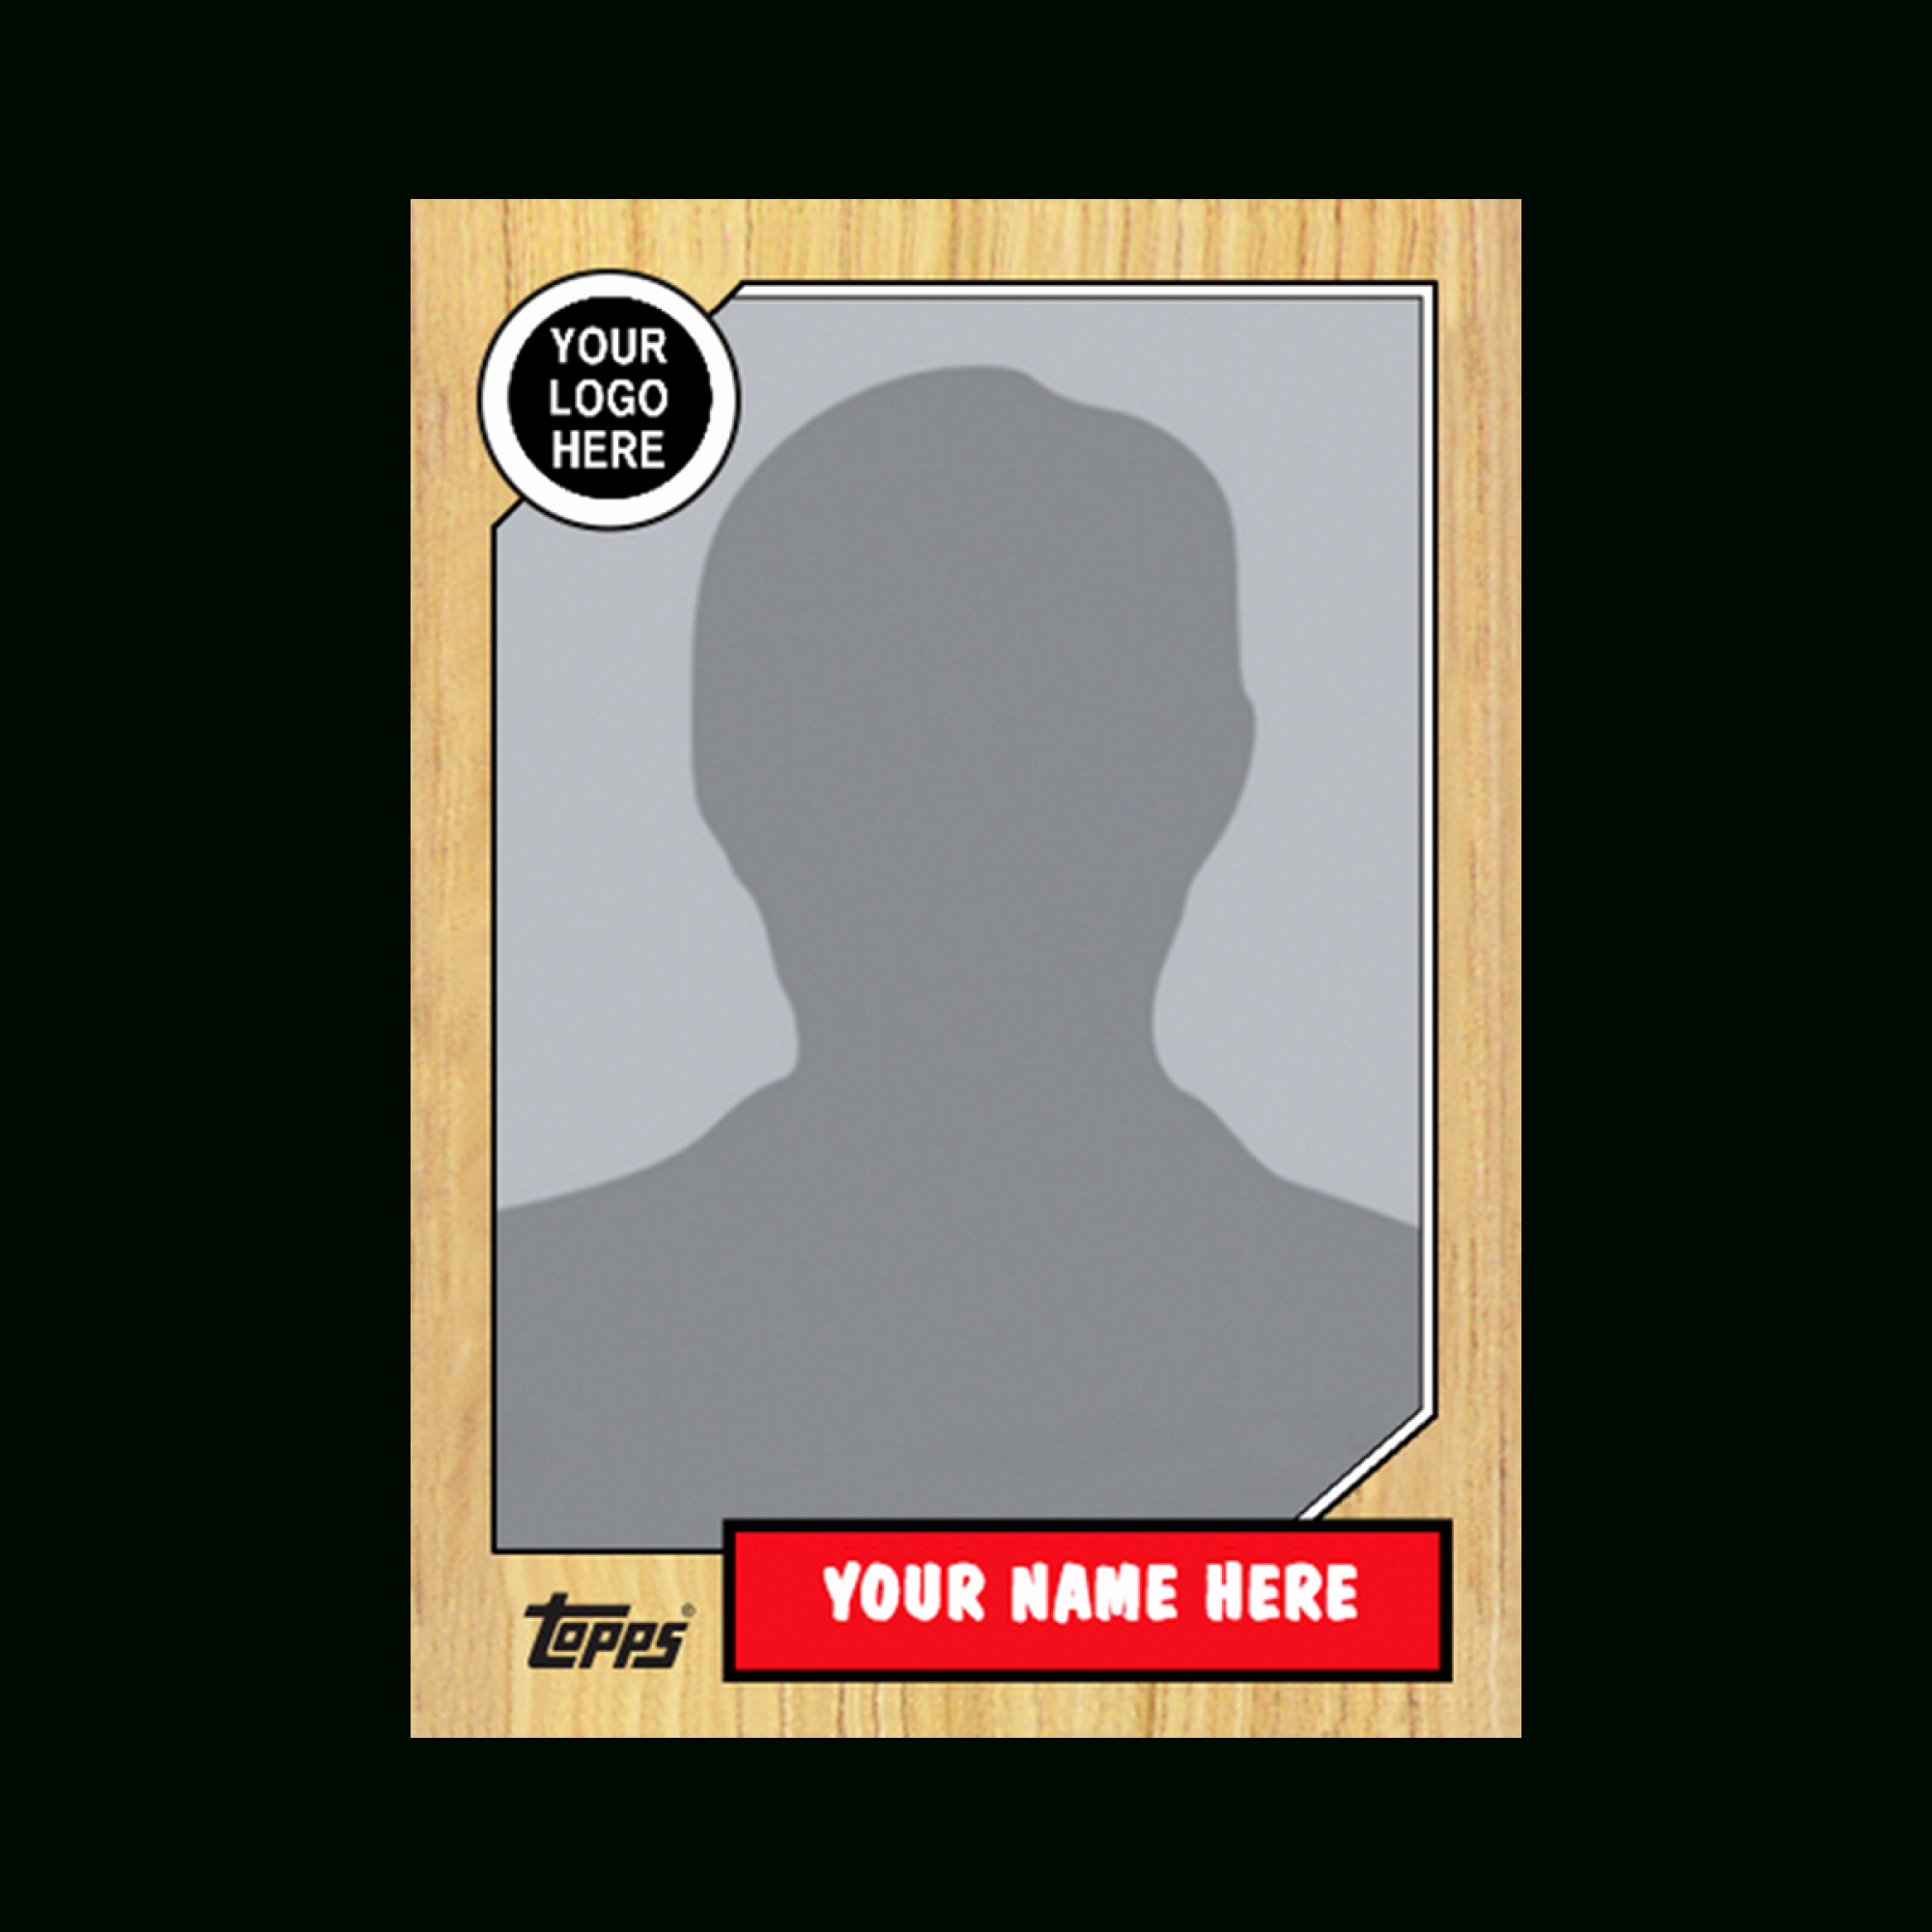 Topps Baseball Card Template Unique Baseball Card Template